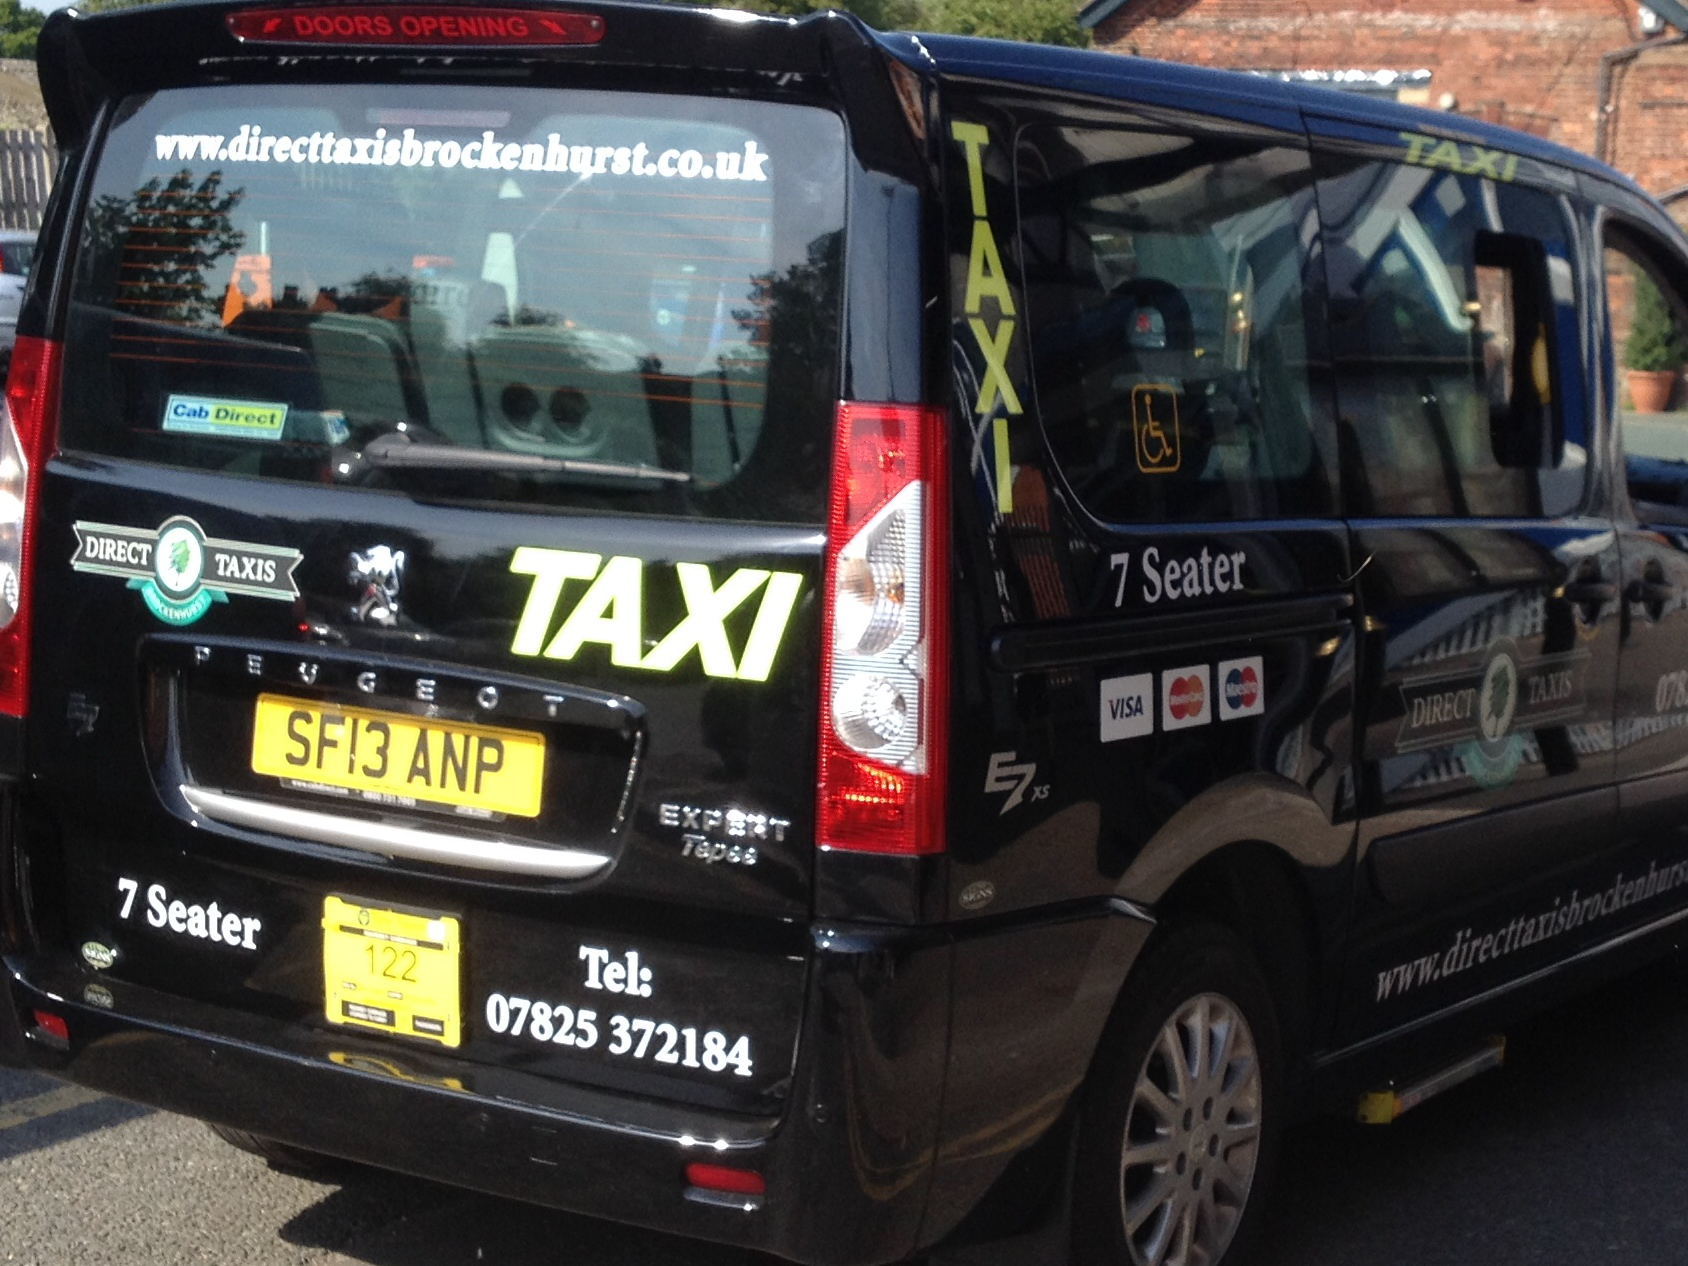 The Benefits Of Booking Ahead With Direct Taxis